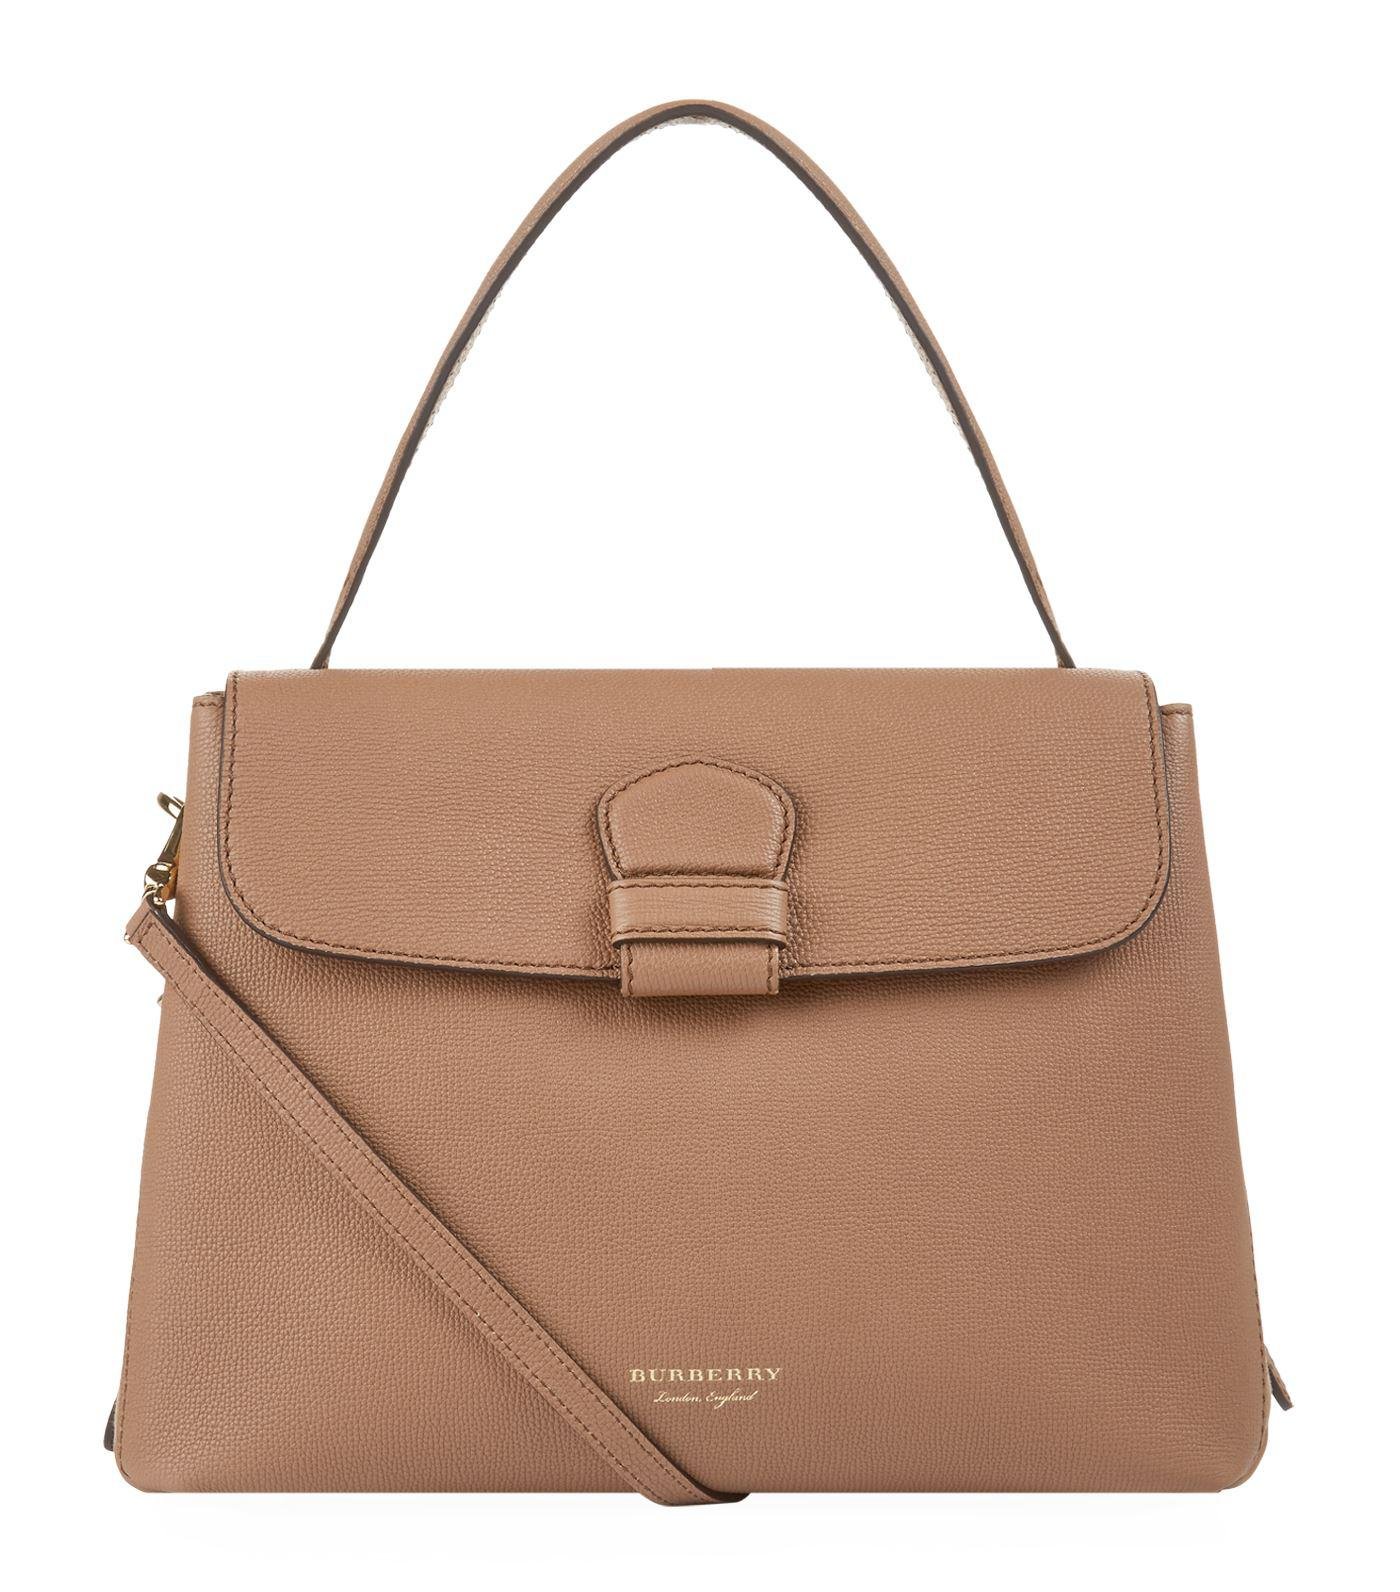 c5221005bcb2 Lyst - Burberry Medium Camberley Tote in Natural